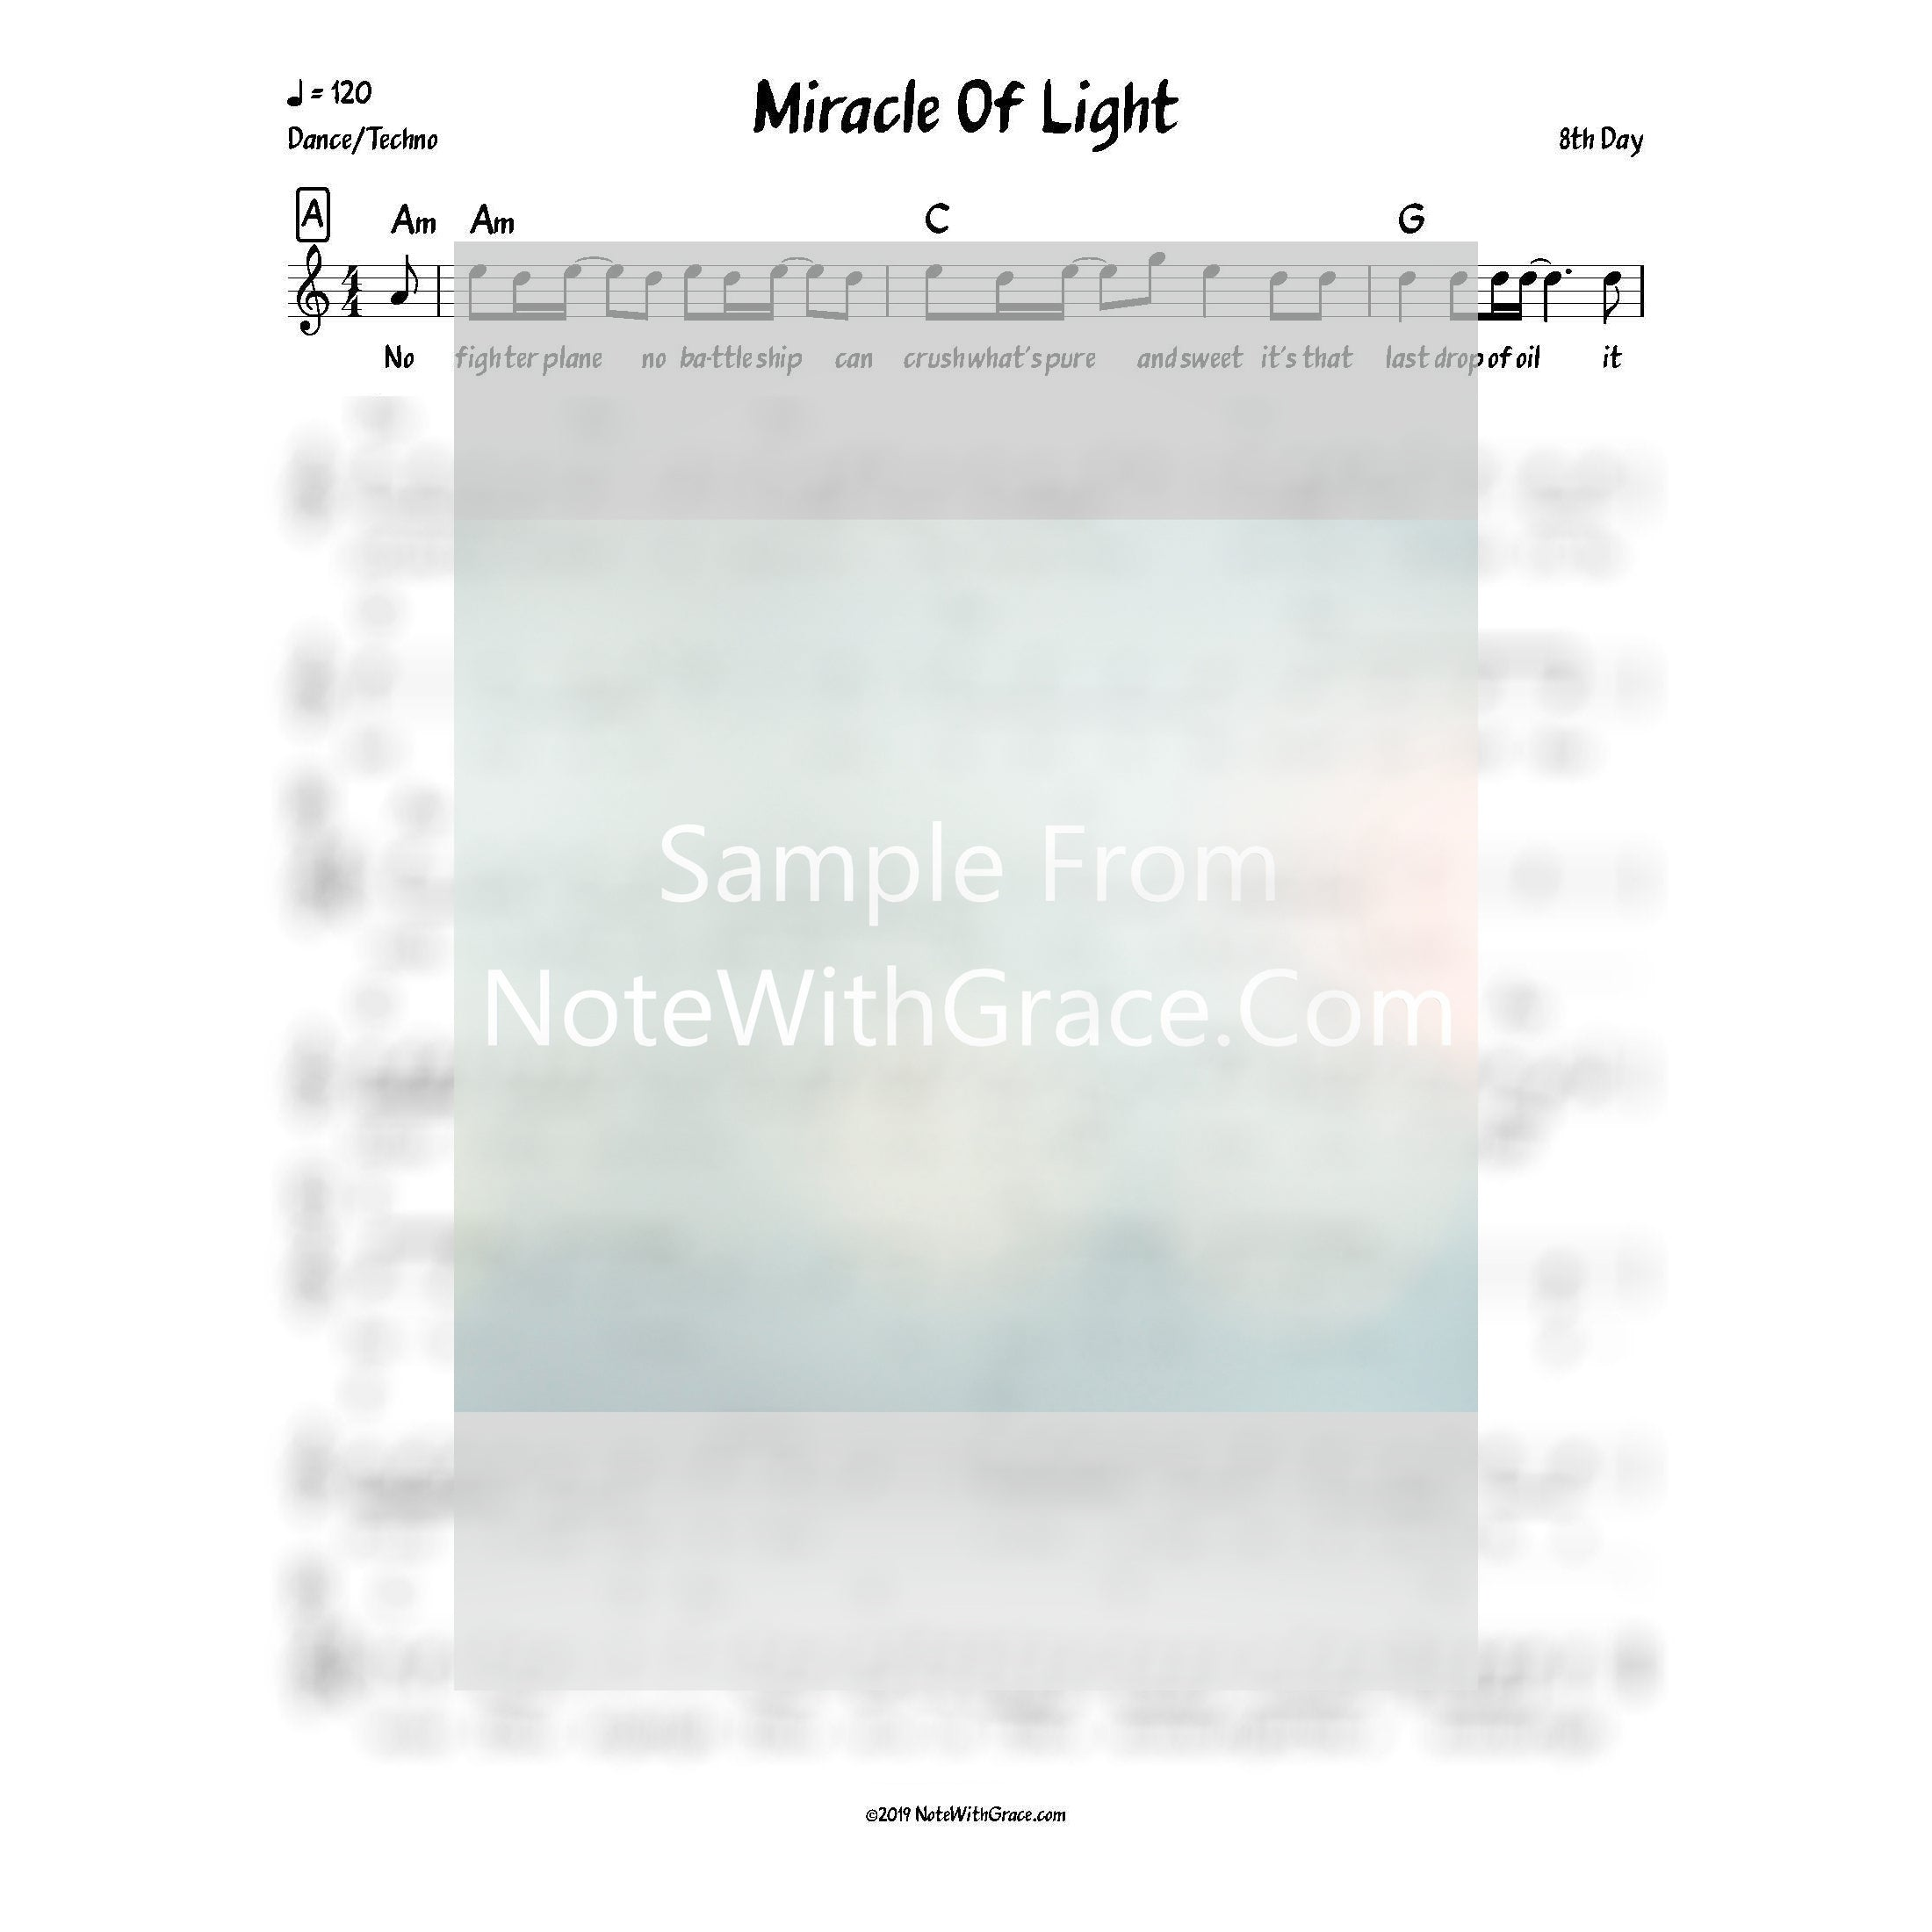 Miracle Of Light Lead Sheet (8th day) Single Miracle Of Light 2017-Sheet music-NoteWithGrace.com